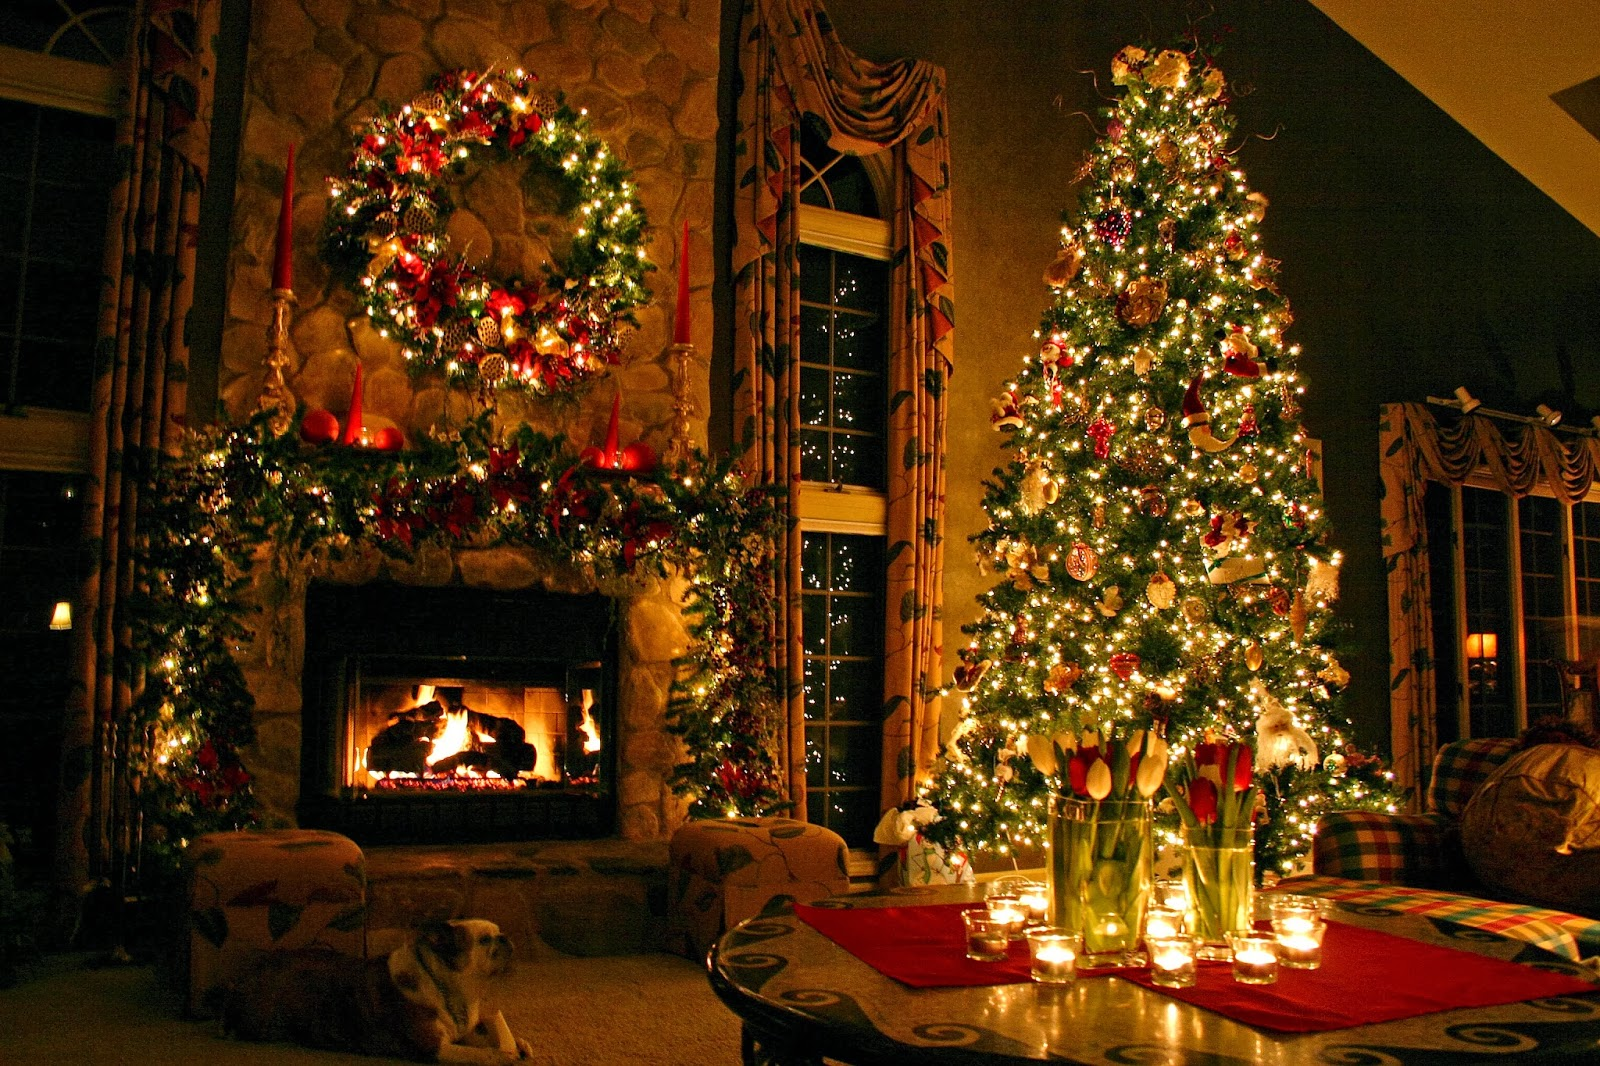 Christmas Home Design Of Simply Elegant Easy Christmas Decorating Ideas Lifestuffs